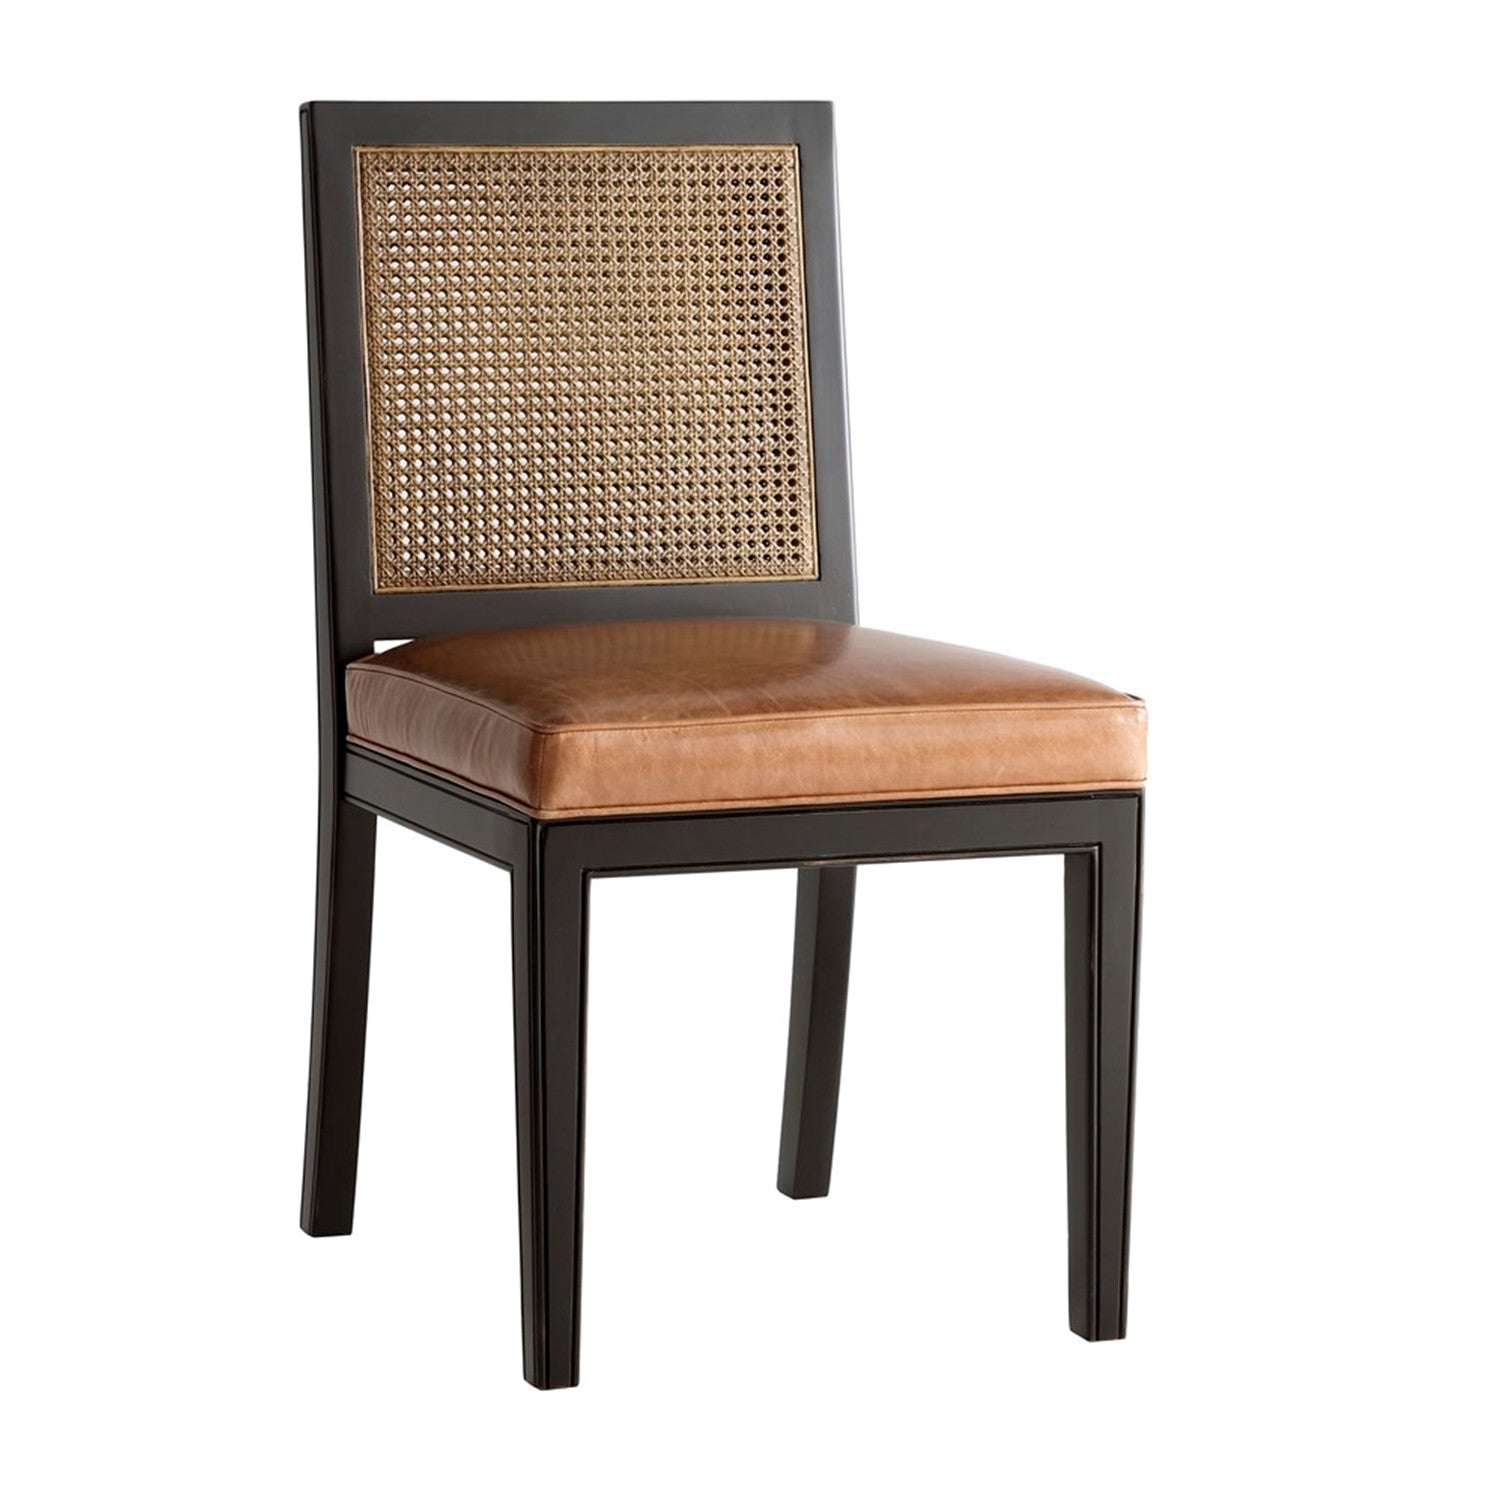 Oliver Cane Side Chair